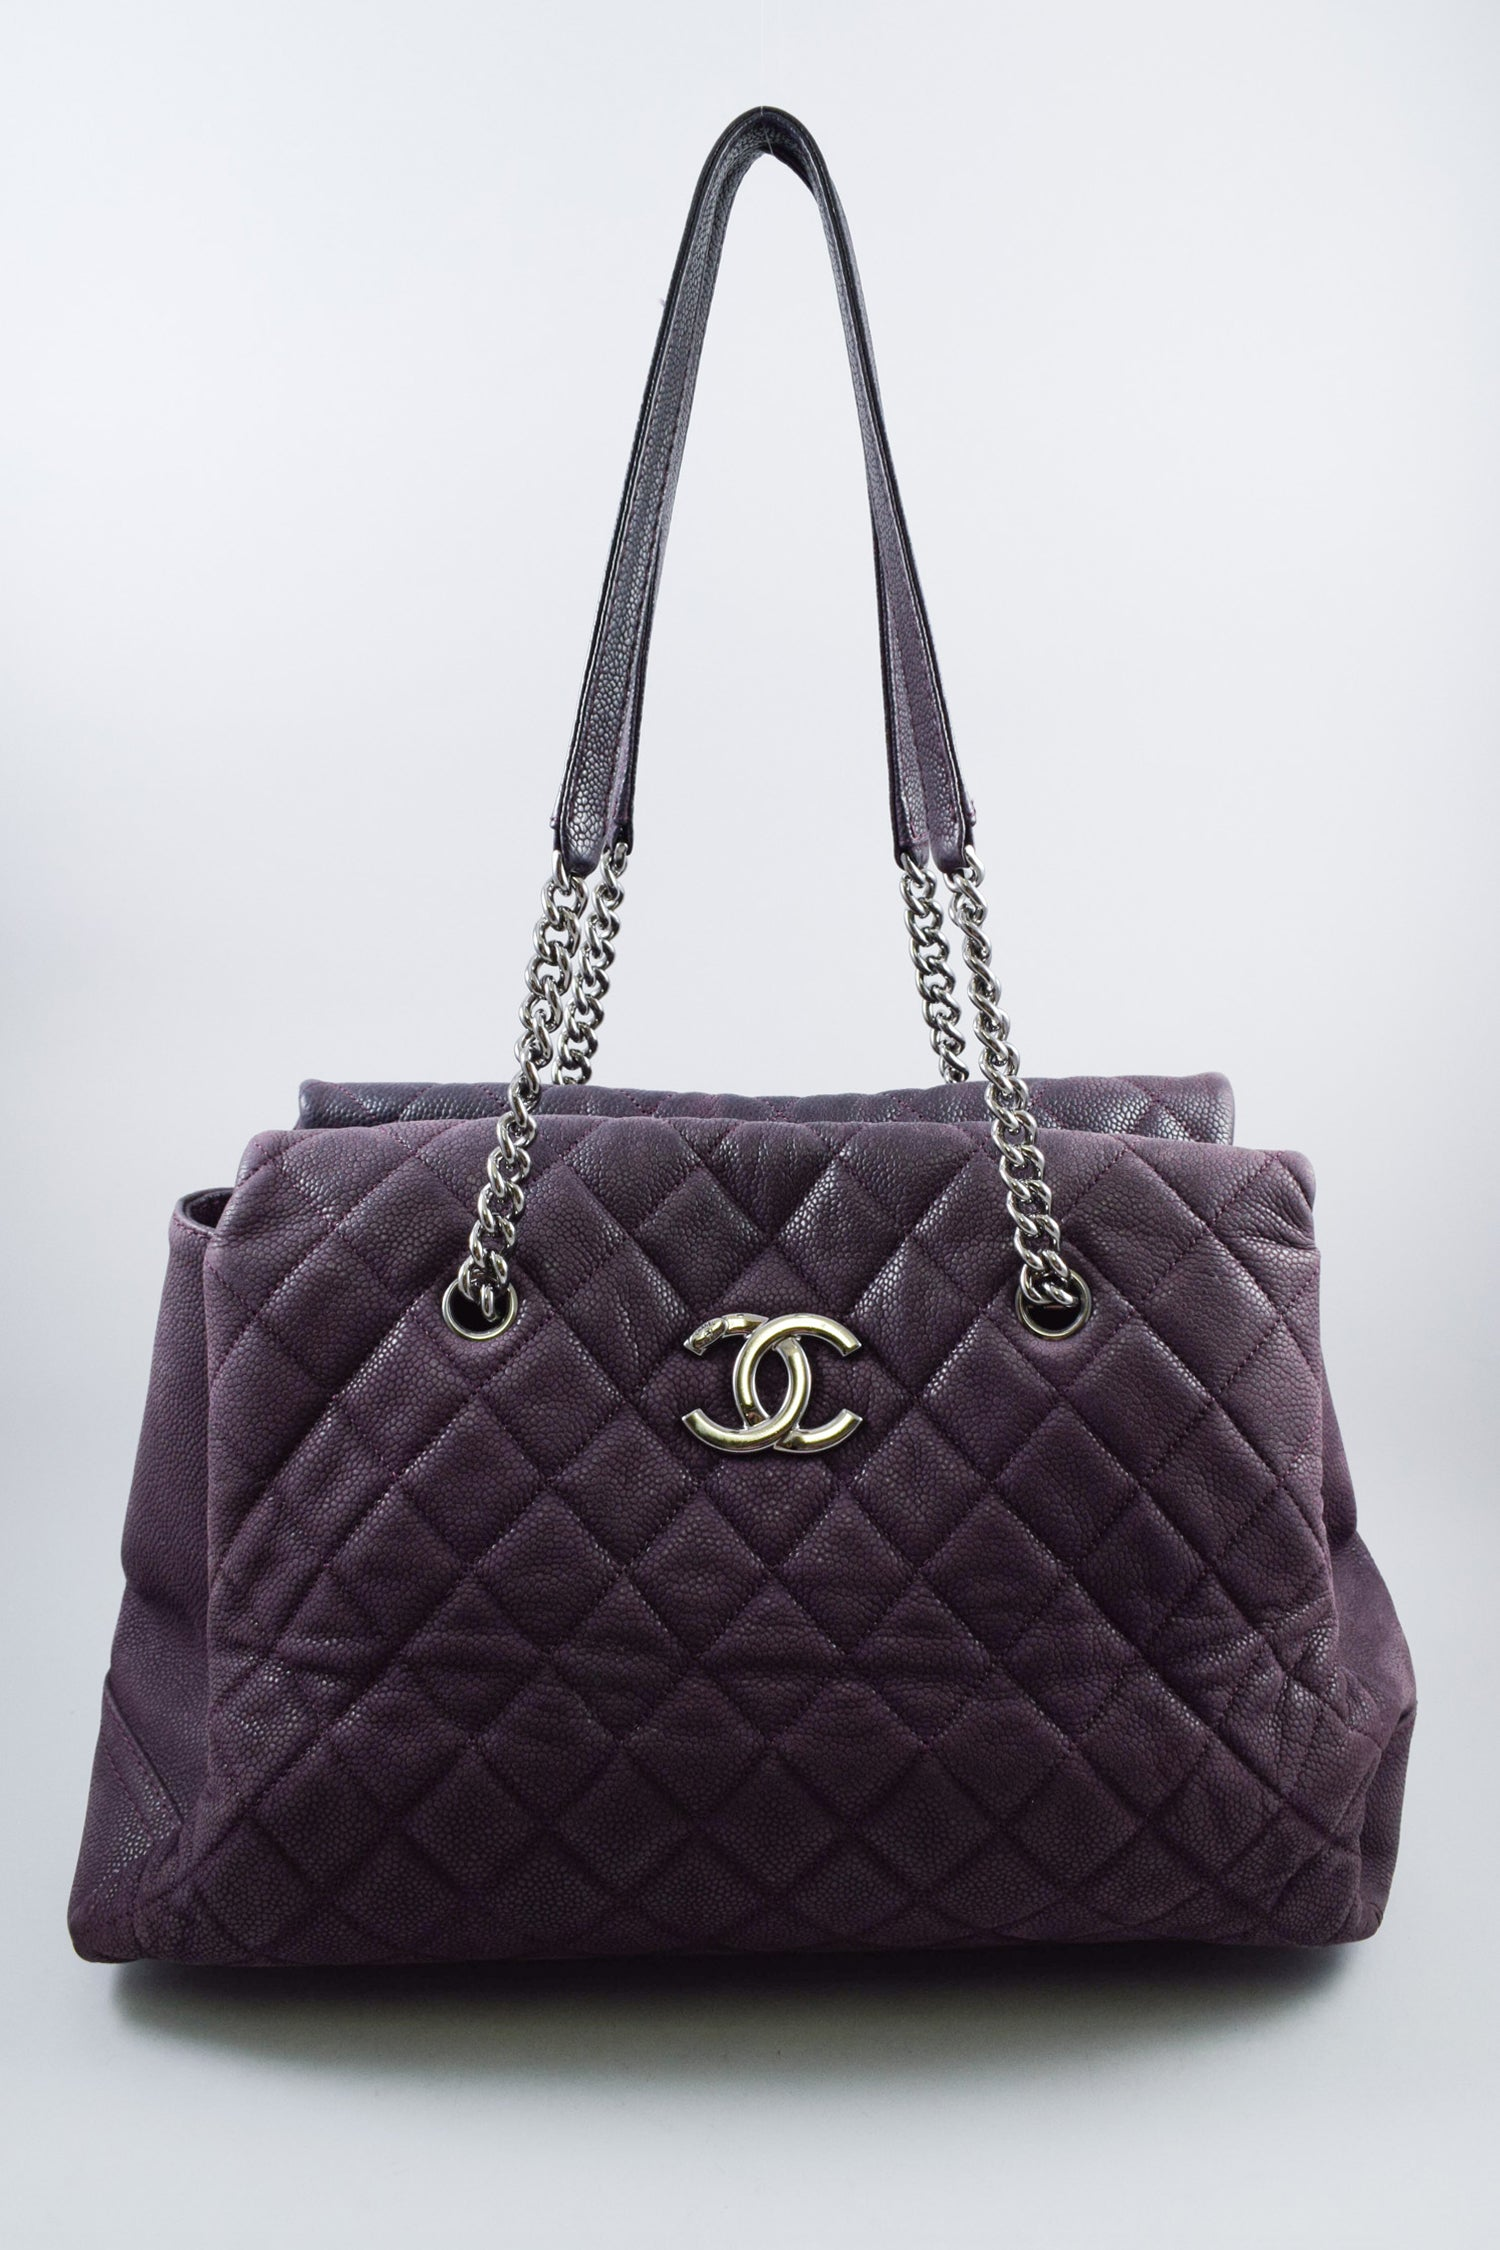 Chanel Purple Quilted Chain Handle Tote